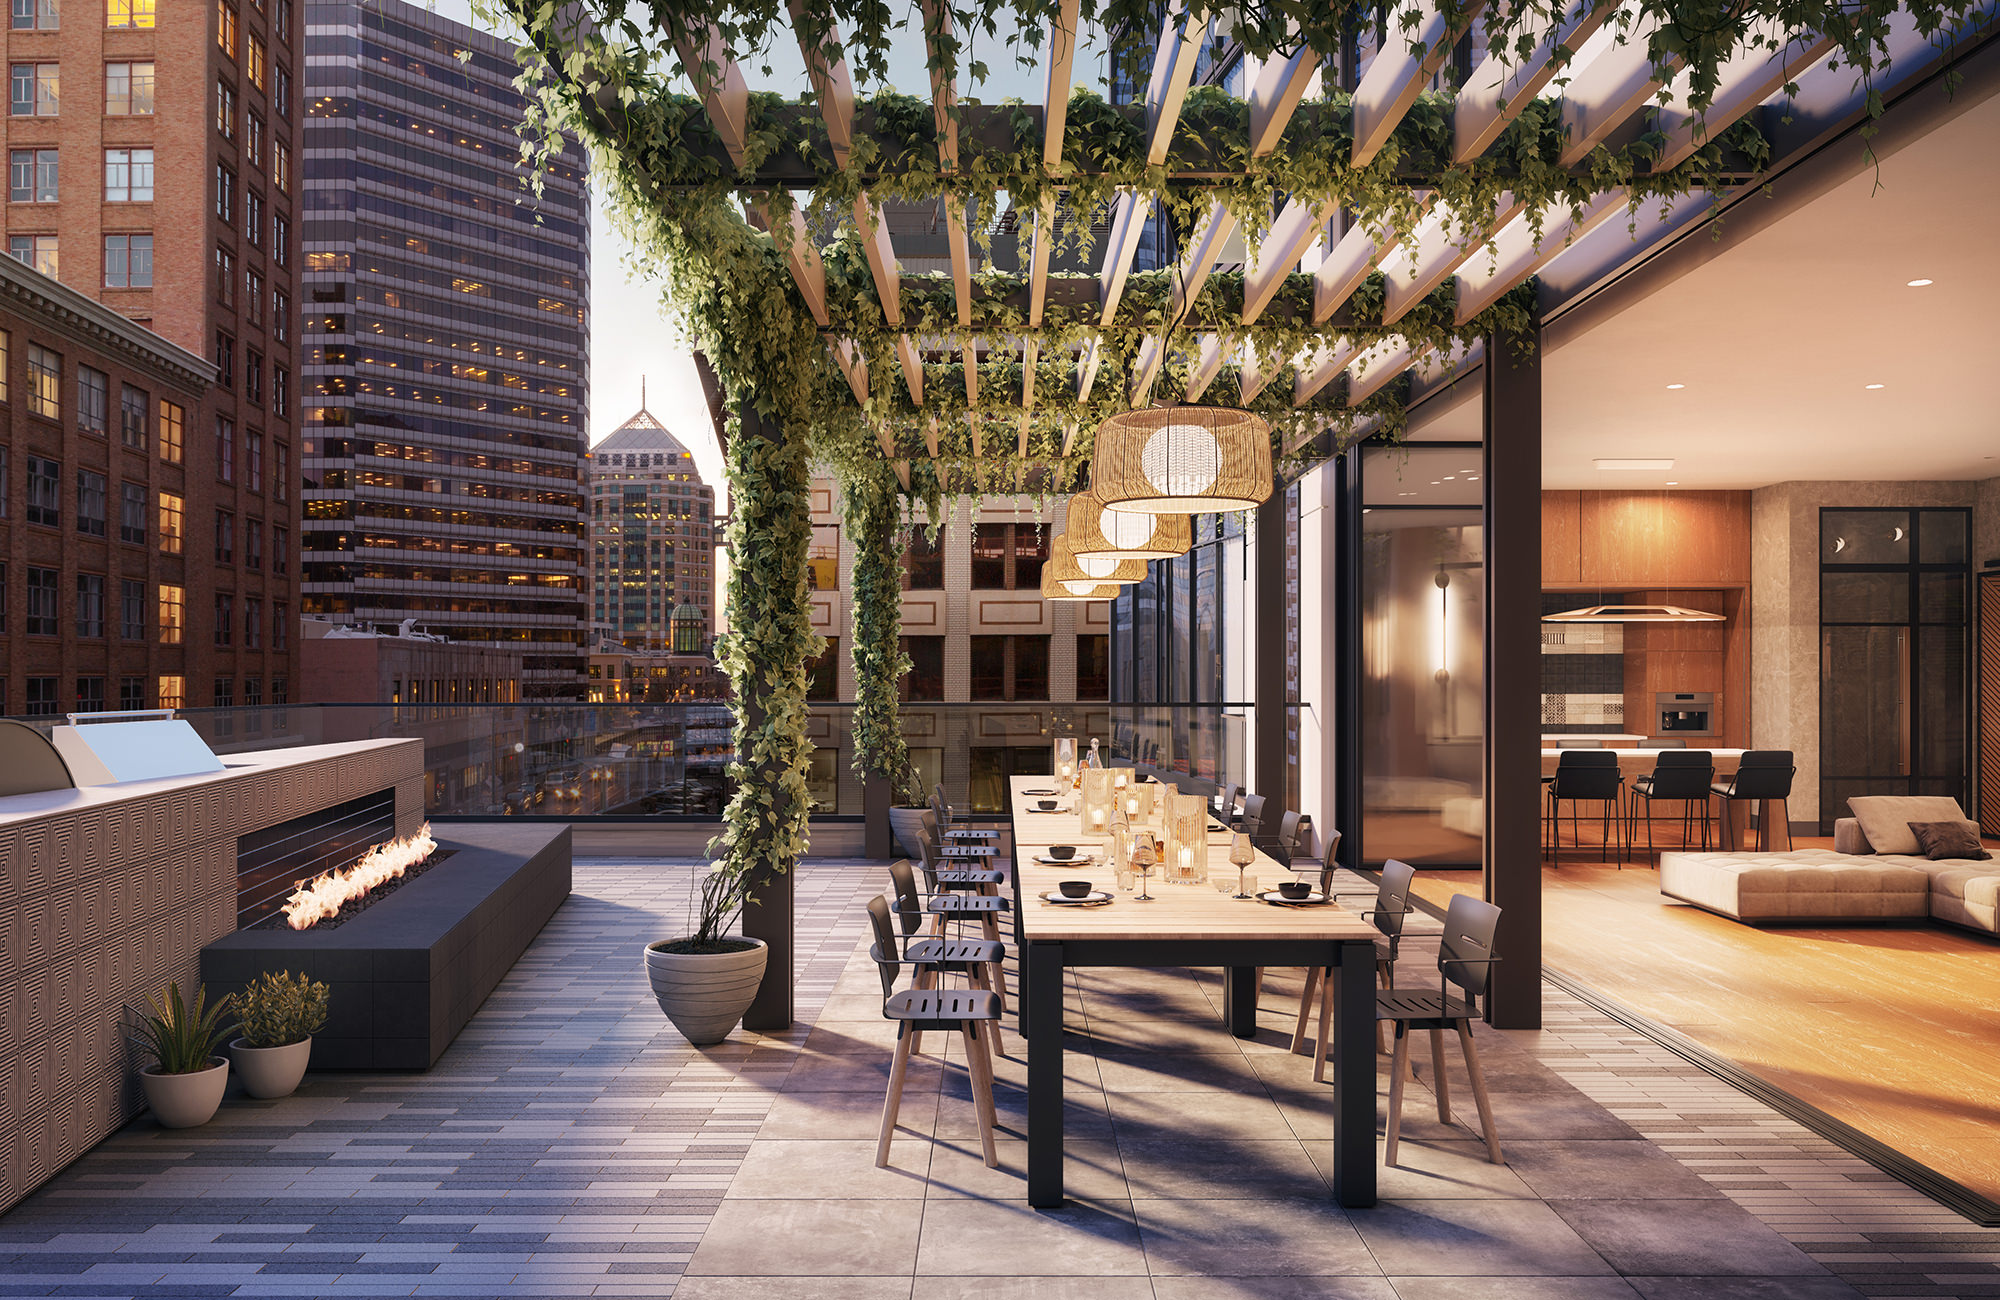 Exterior of rooftop outdoor seating with overhead trellis, firepit, barbeque and open glass wall to interior couch and table seating.